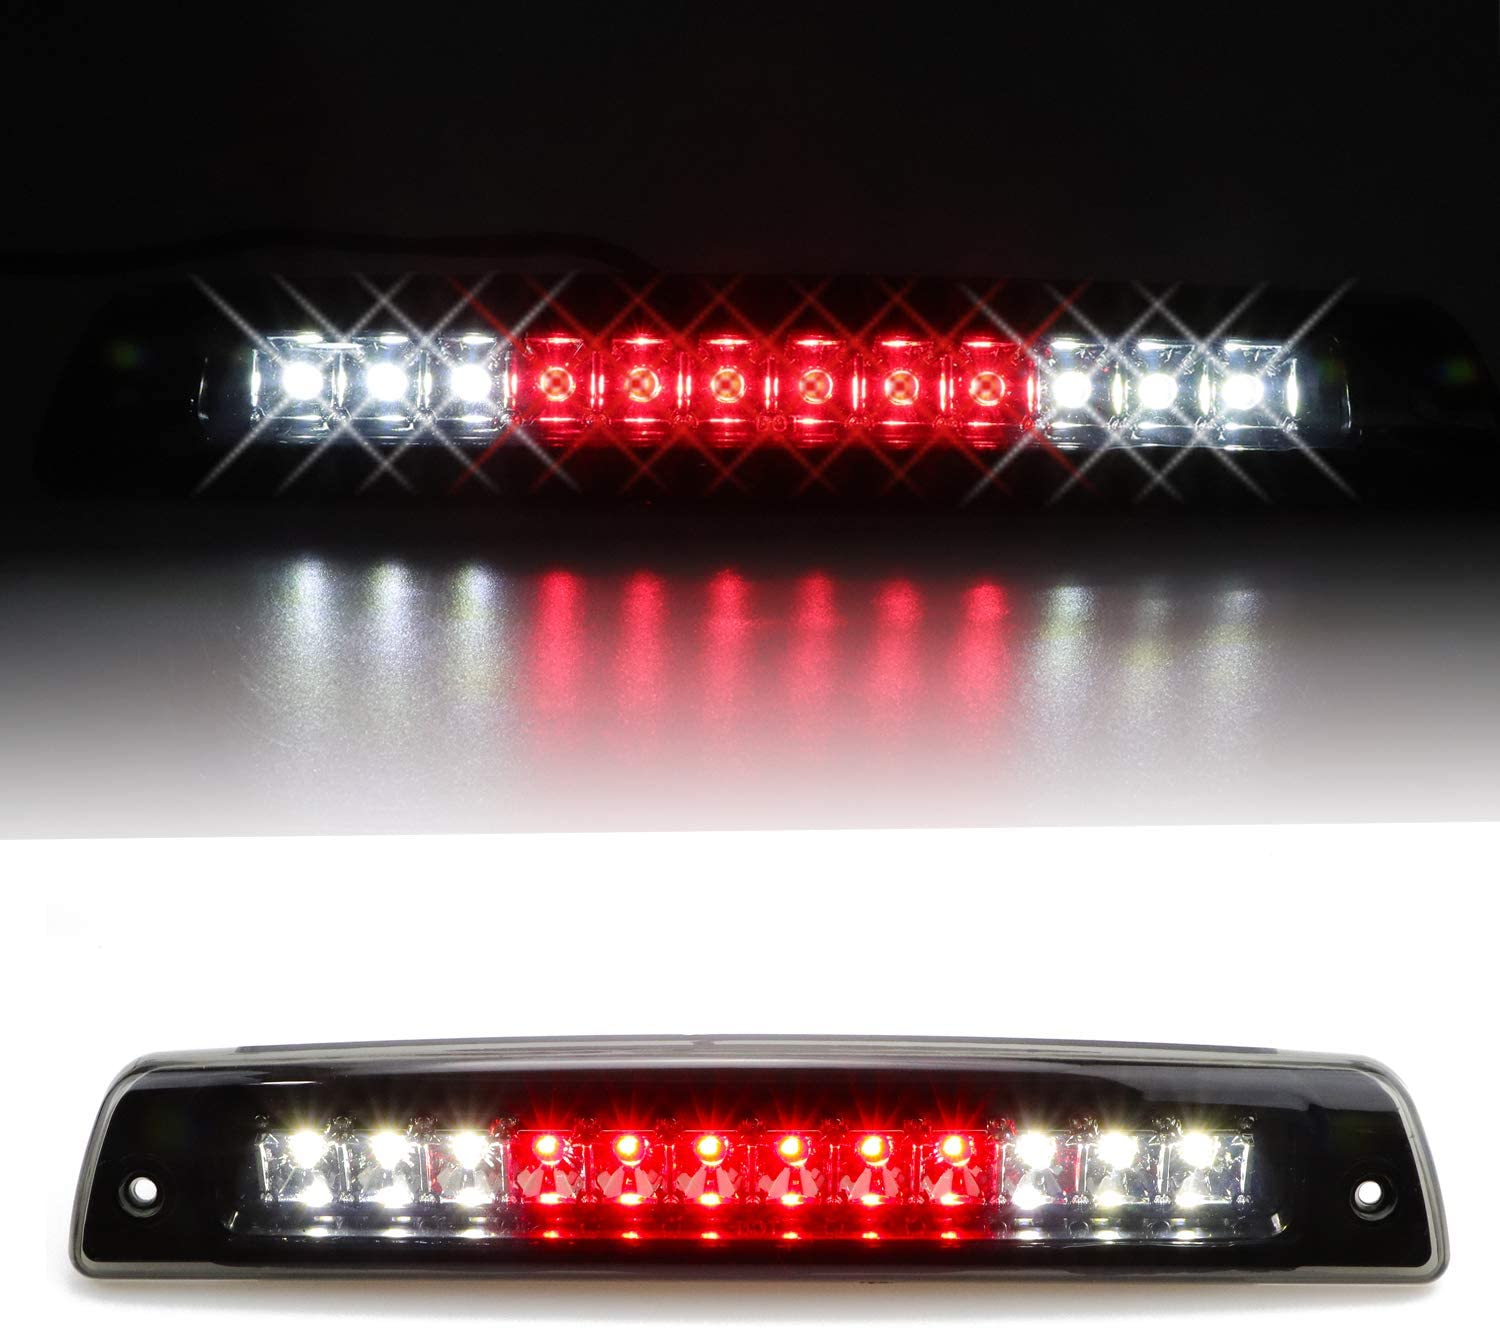 Hight Mount Stop Light Third 3rd Brake Reverse Lights LED Lamp Replacement For 1994-2001 Dodge Ram 1500 2500 3500 Cargo Lights electroplate Cover Smoke Lens